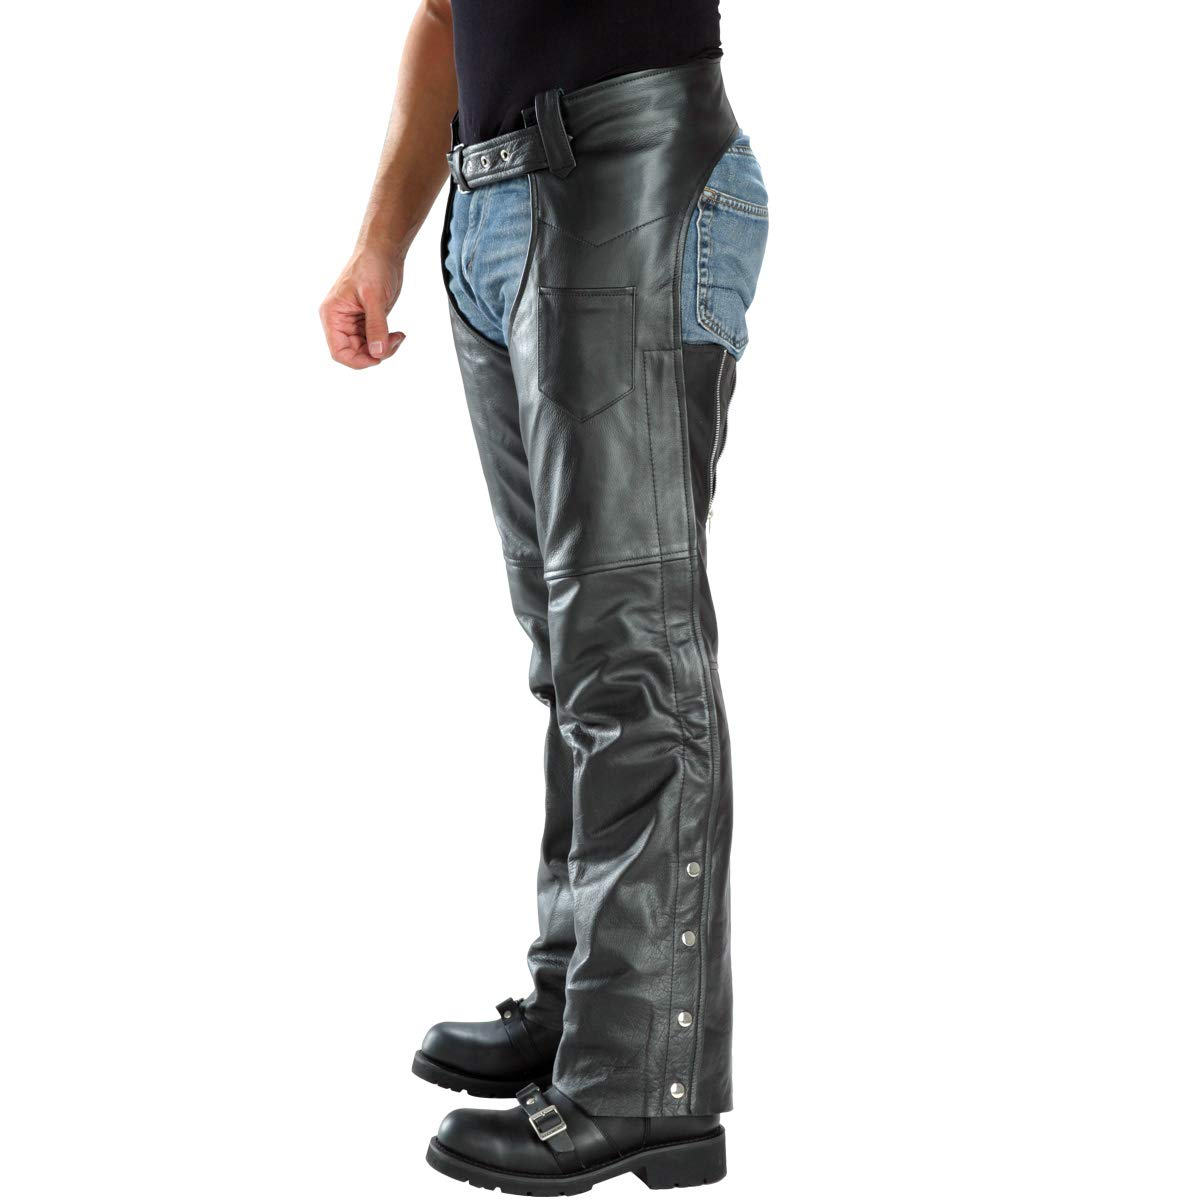 Xelement B7552 Men's Black Easy Fit Premium Motorcycle Chaps - 46 by Xelement